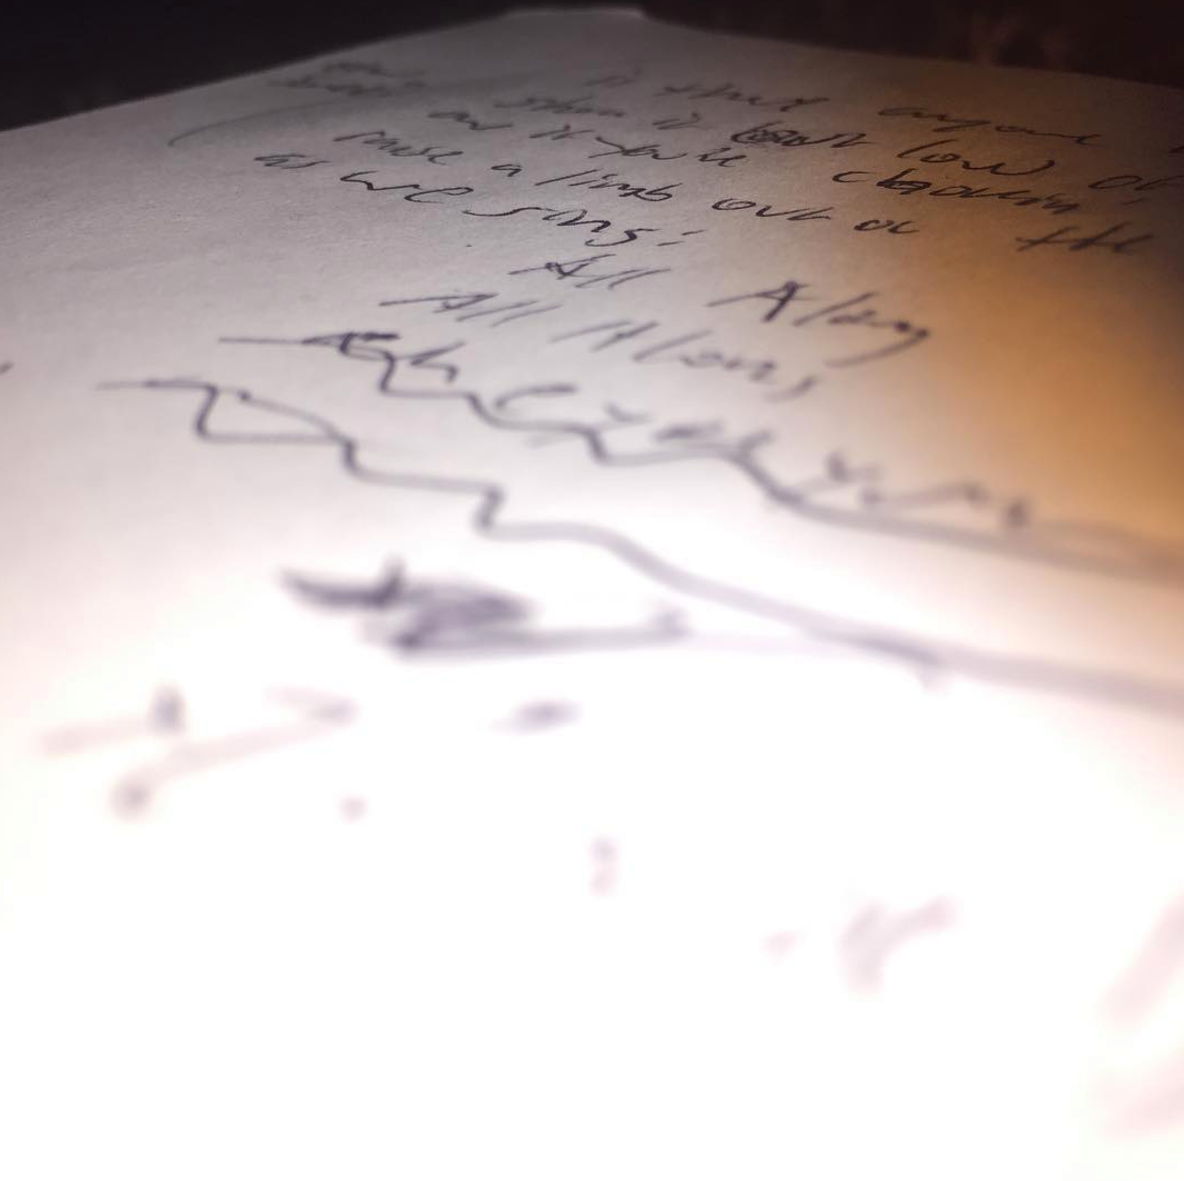 12.26.2015 and here's my notes for the last song on the album.